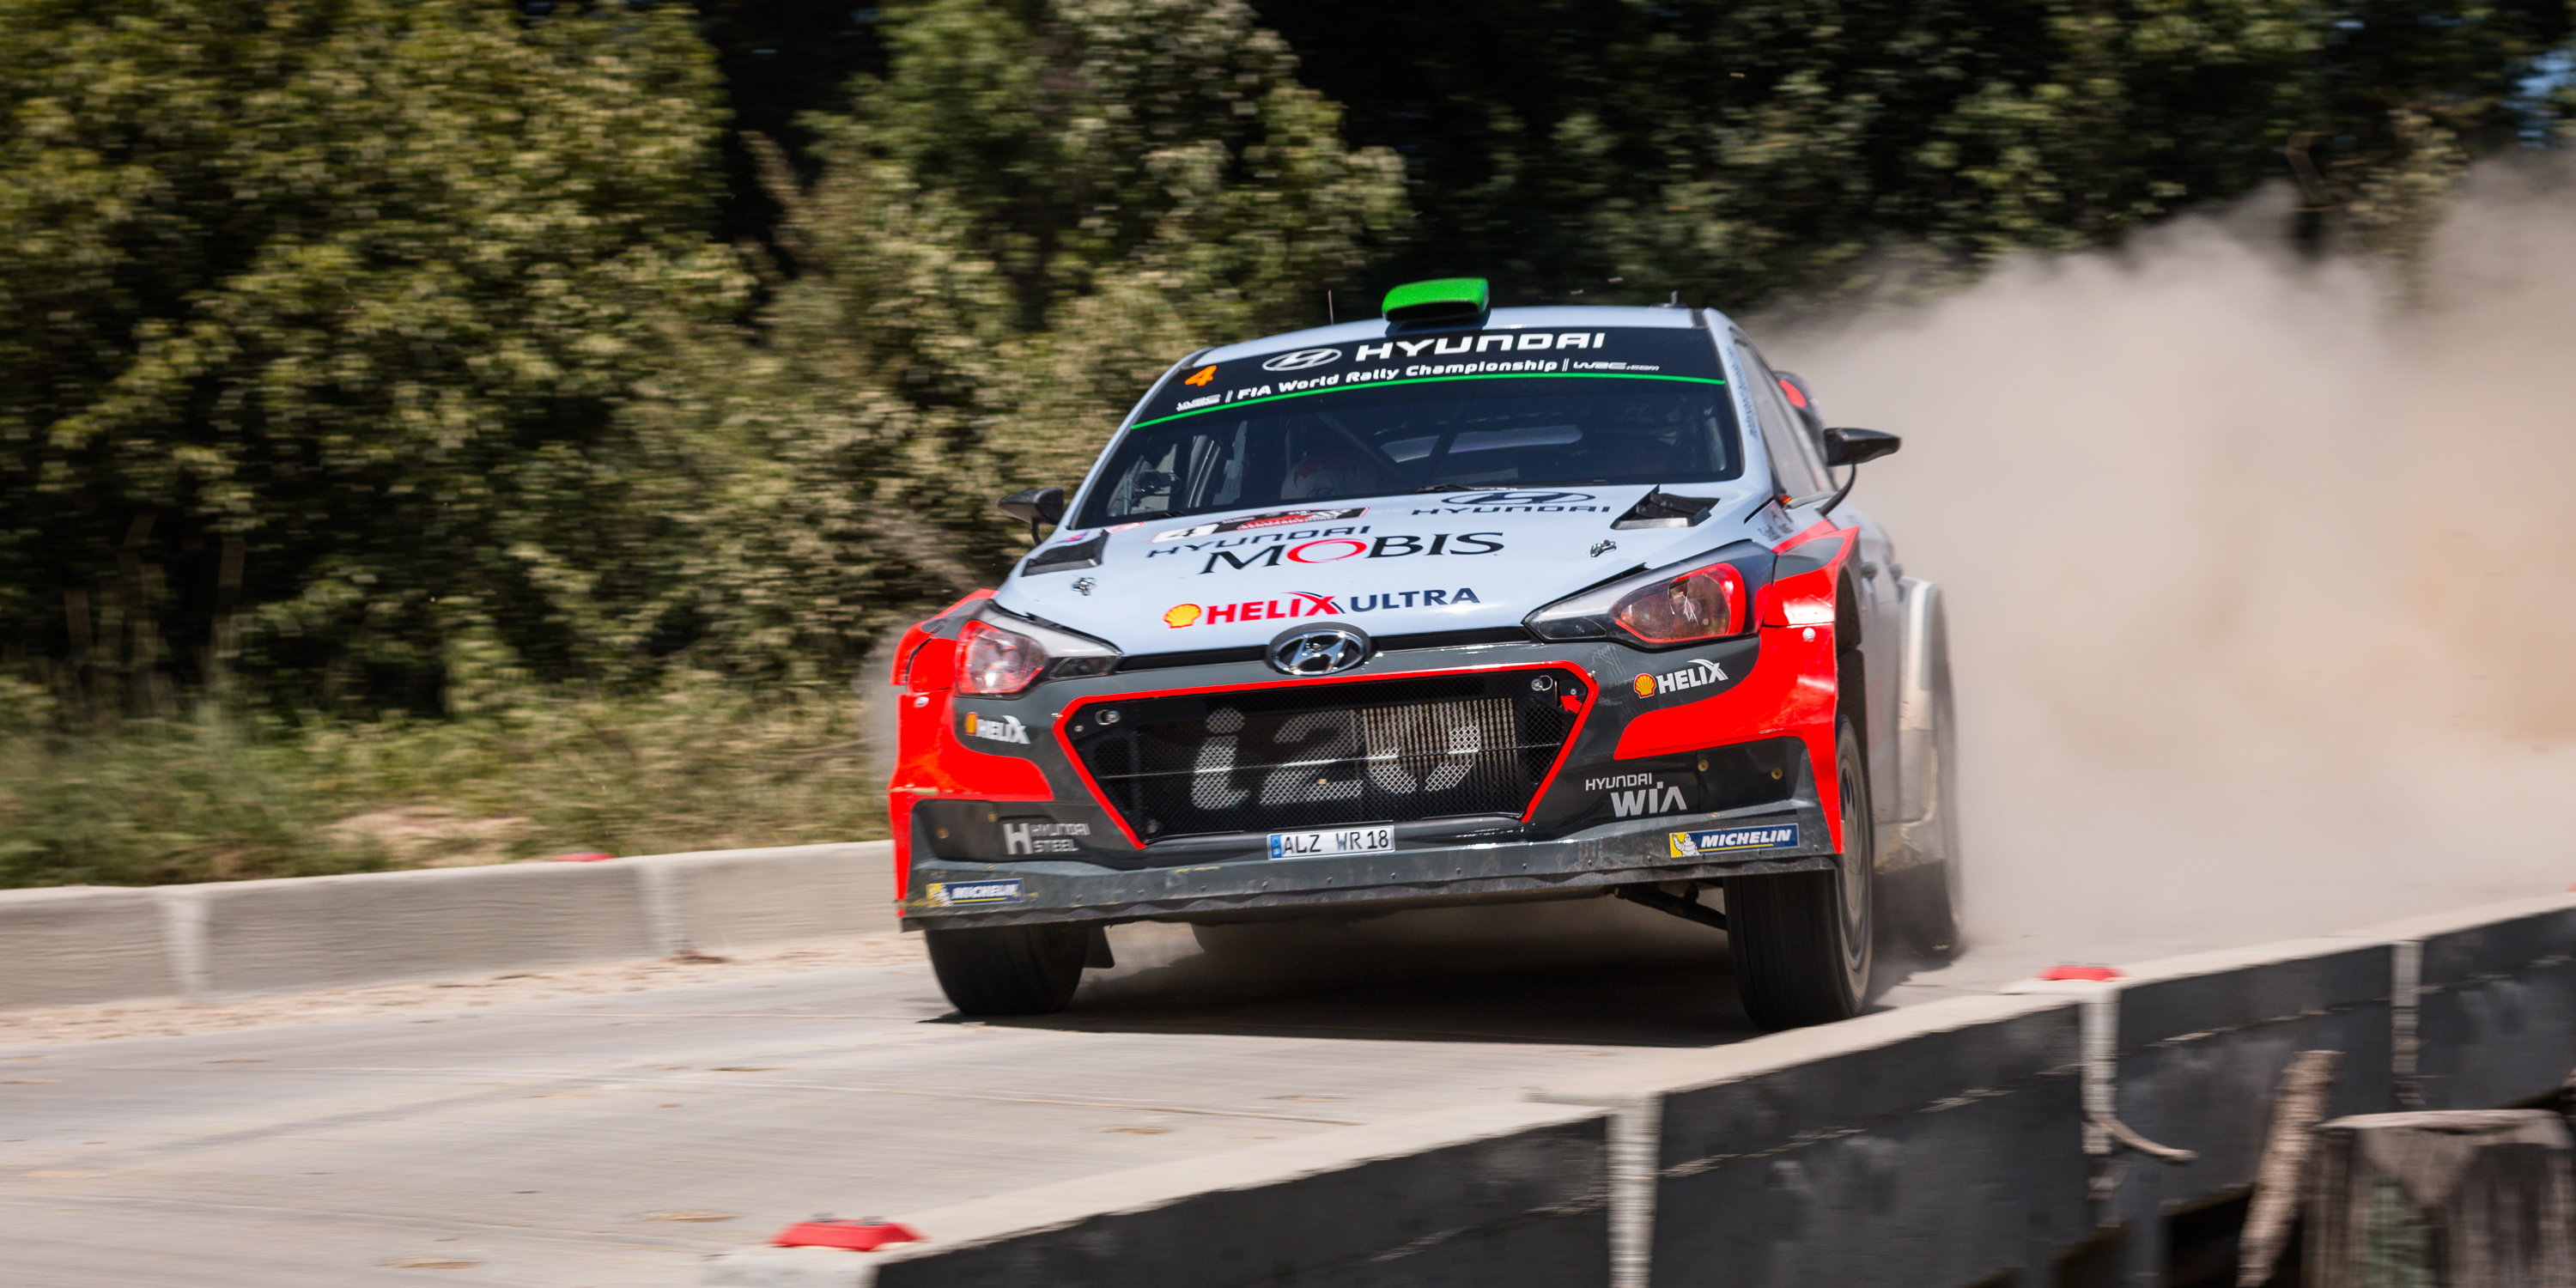 2016 Hyundai I20 Wrc Review Riding Shotgun With Hyundai